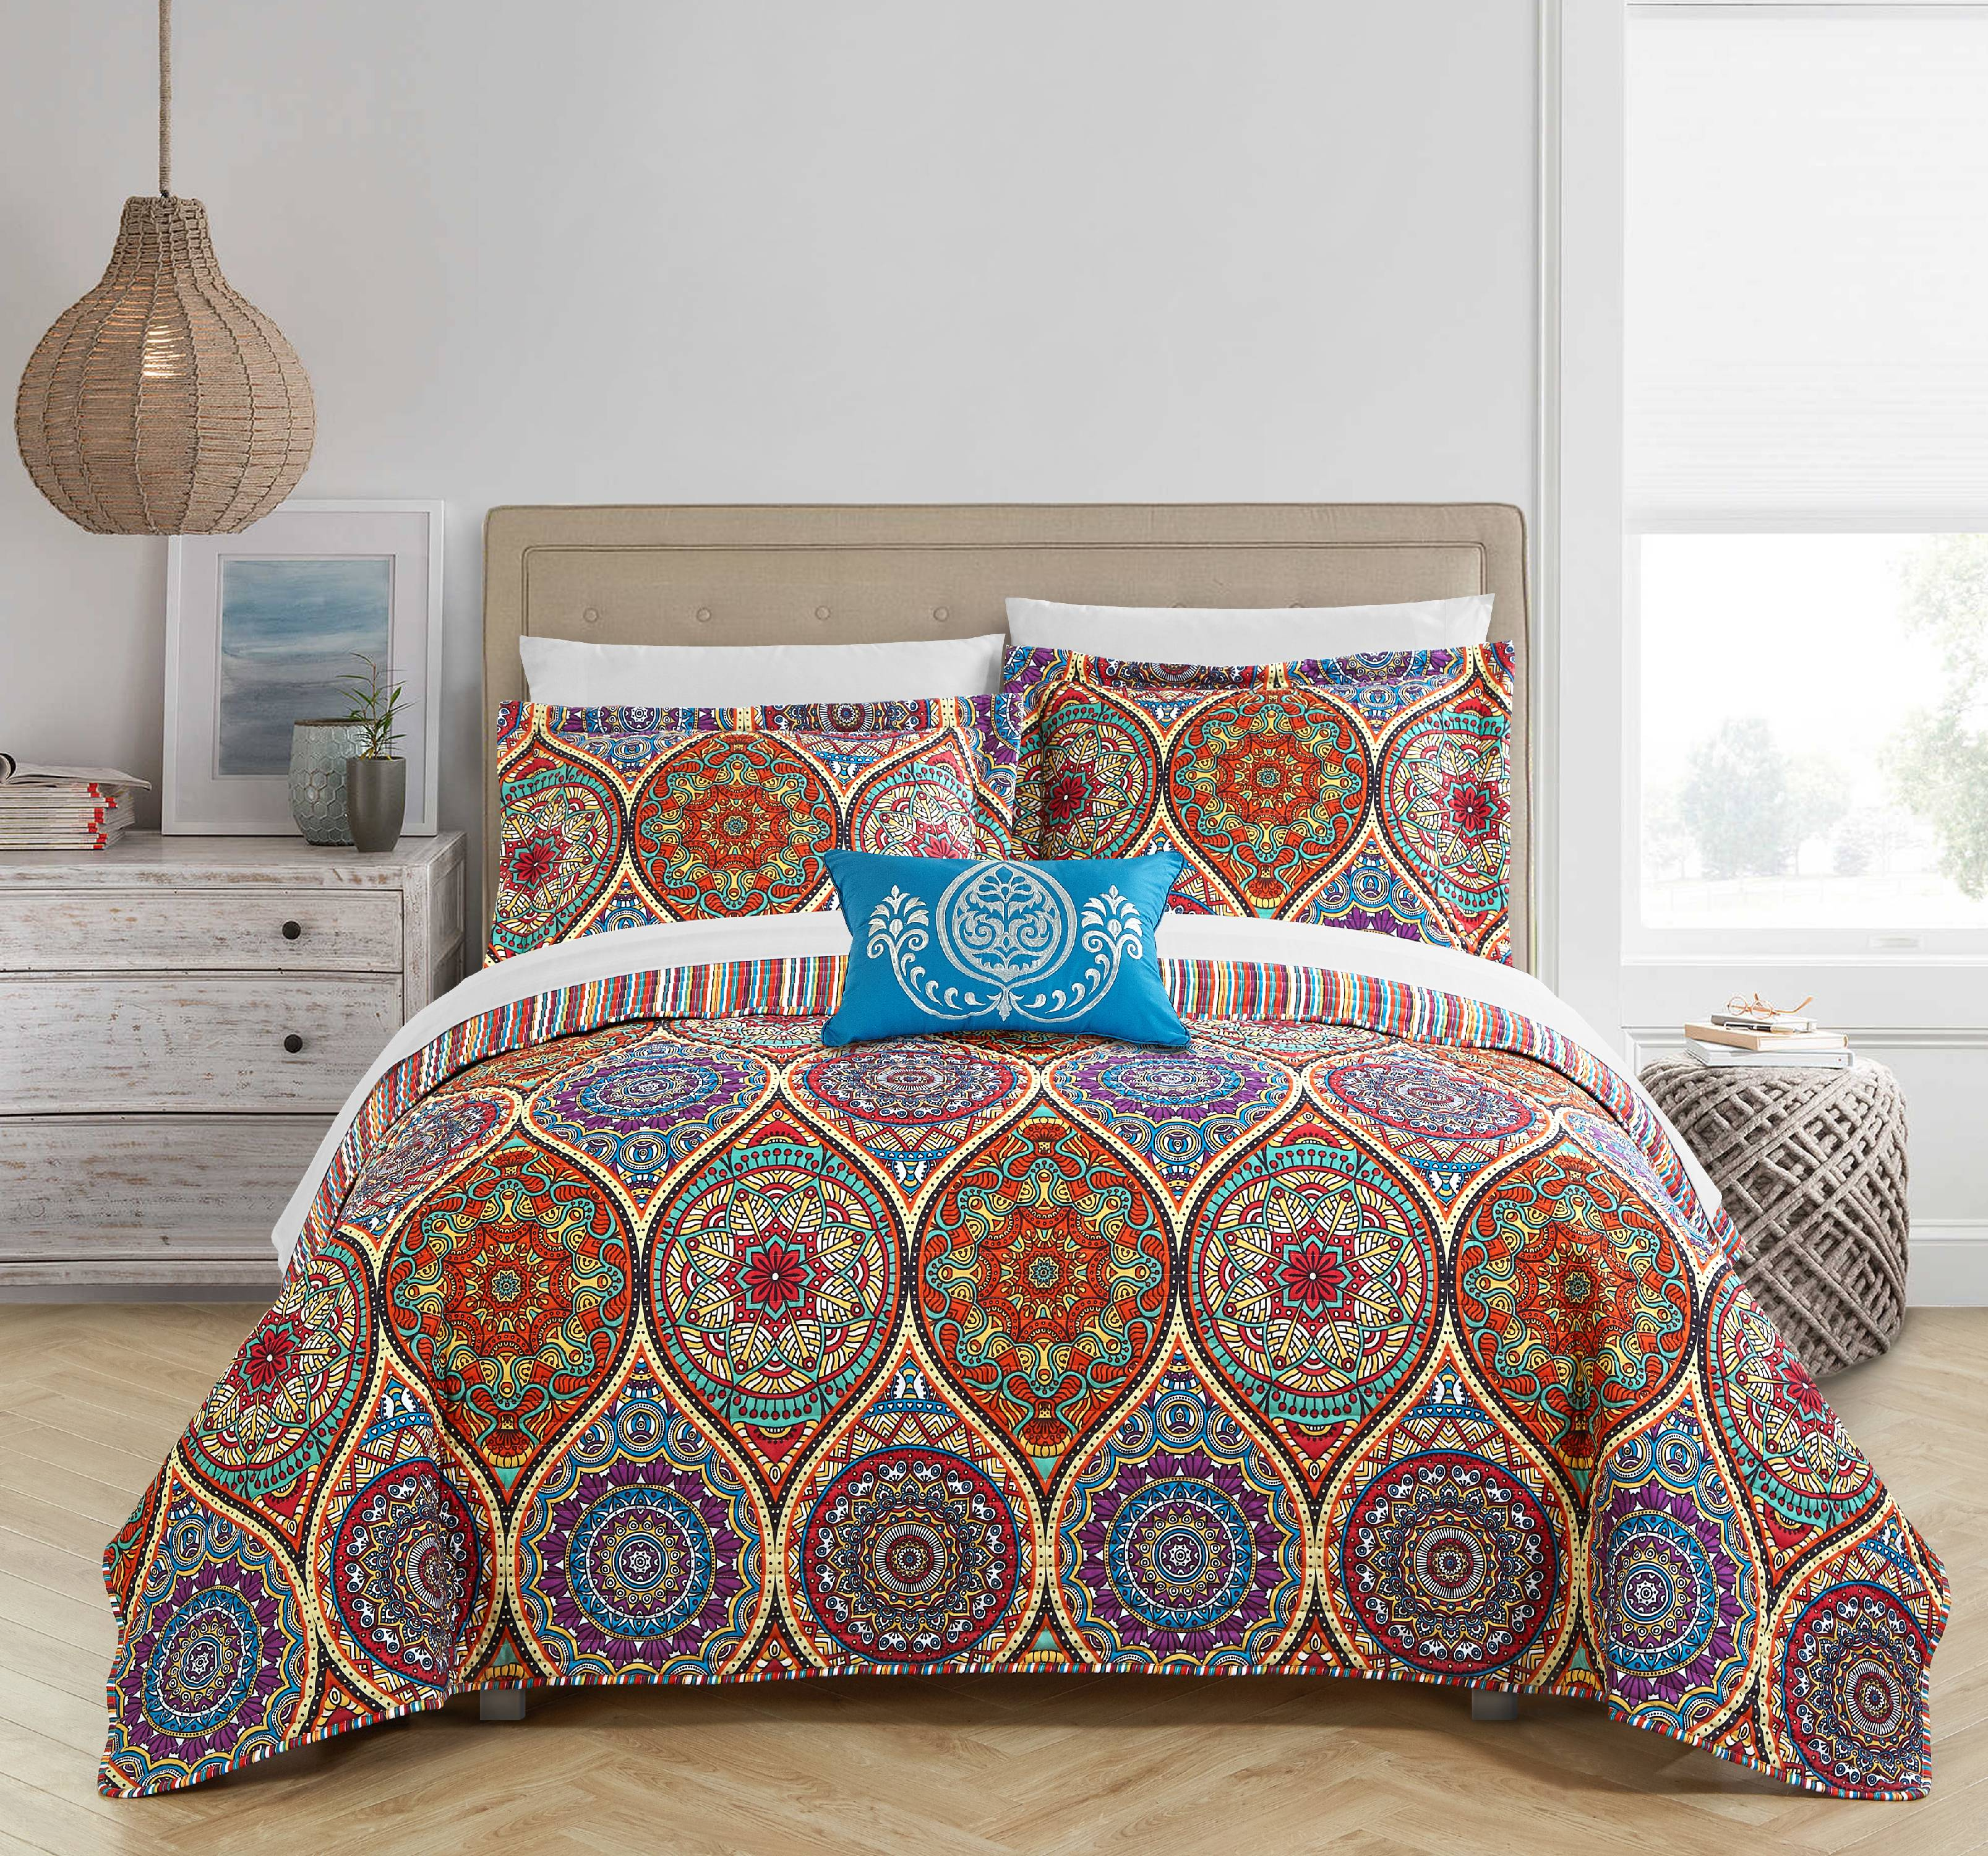 Chic Home Lena 4 Piece Reversible Quilt Set, Bedding Cover